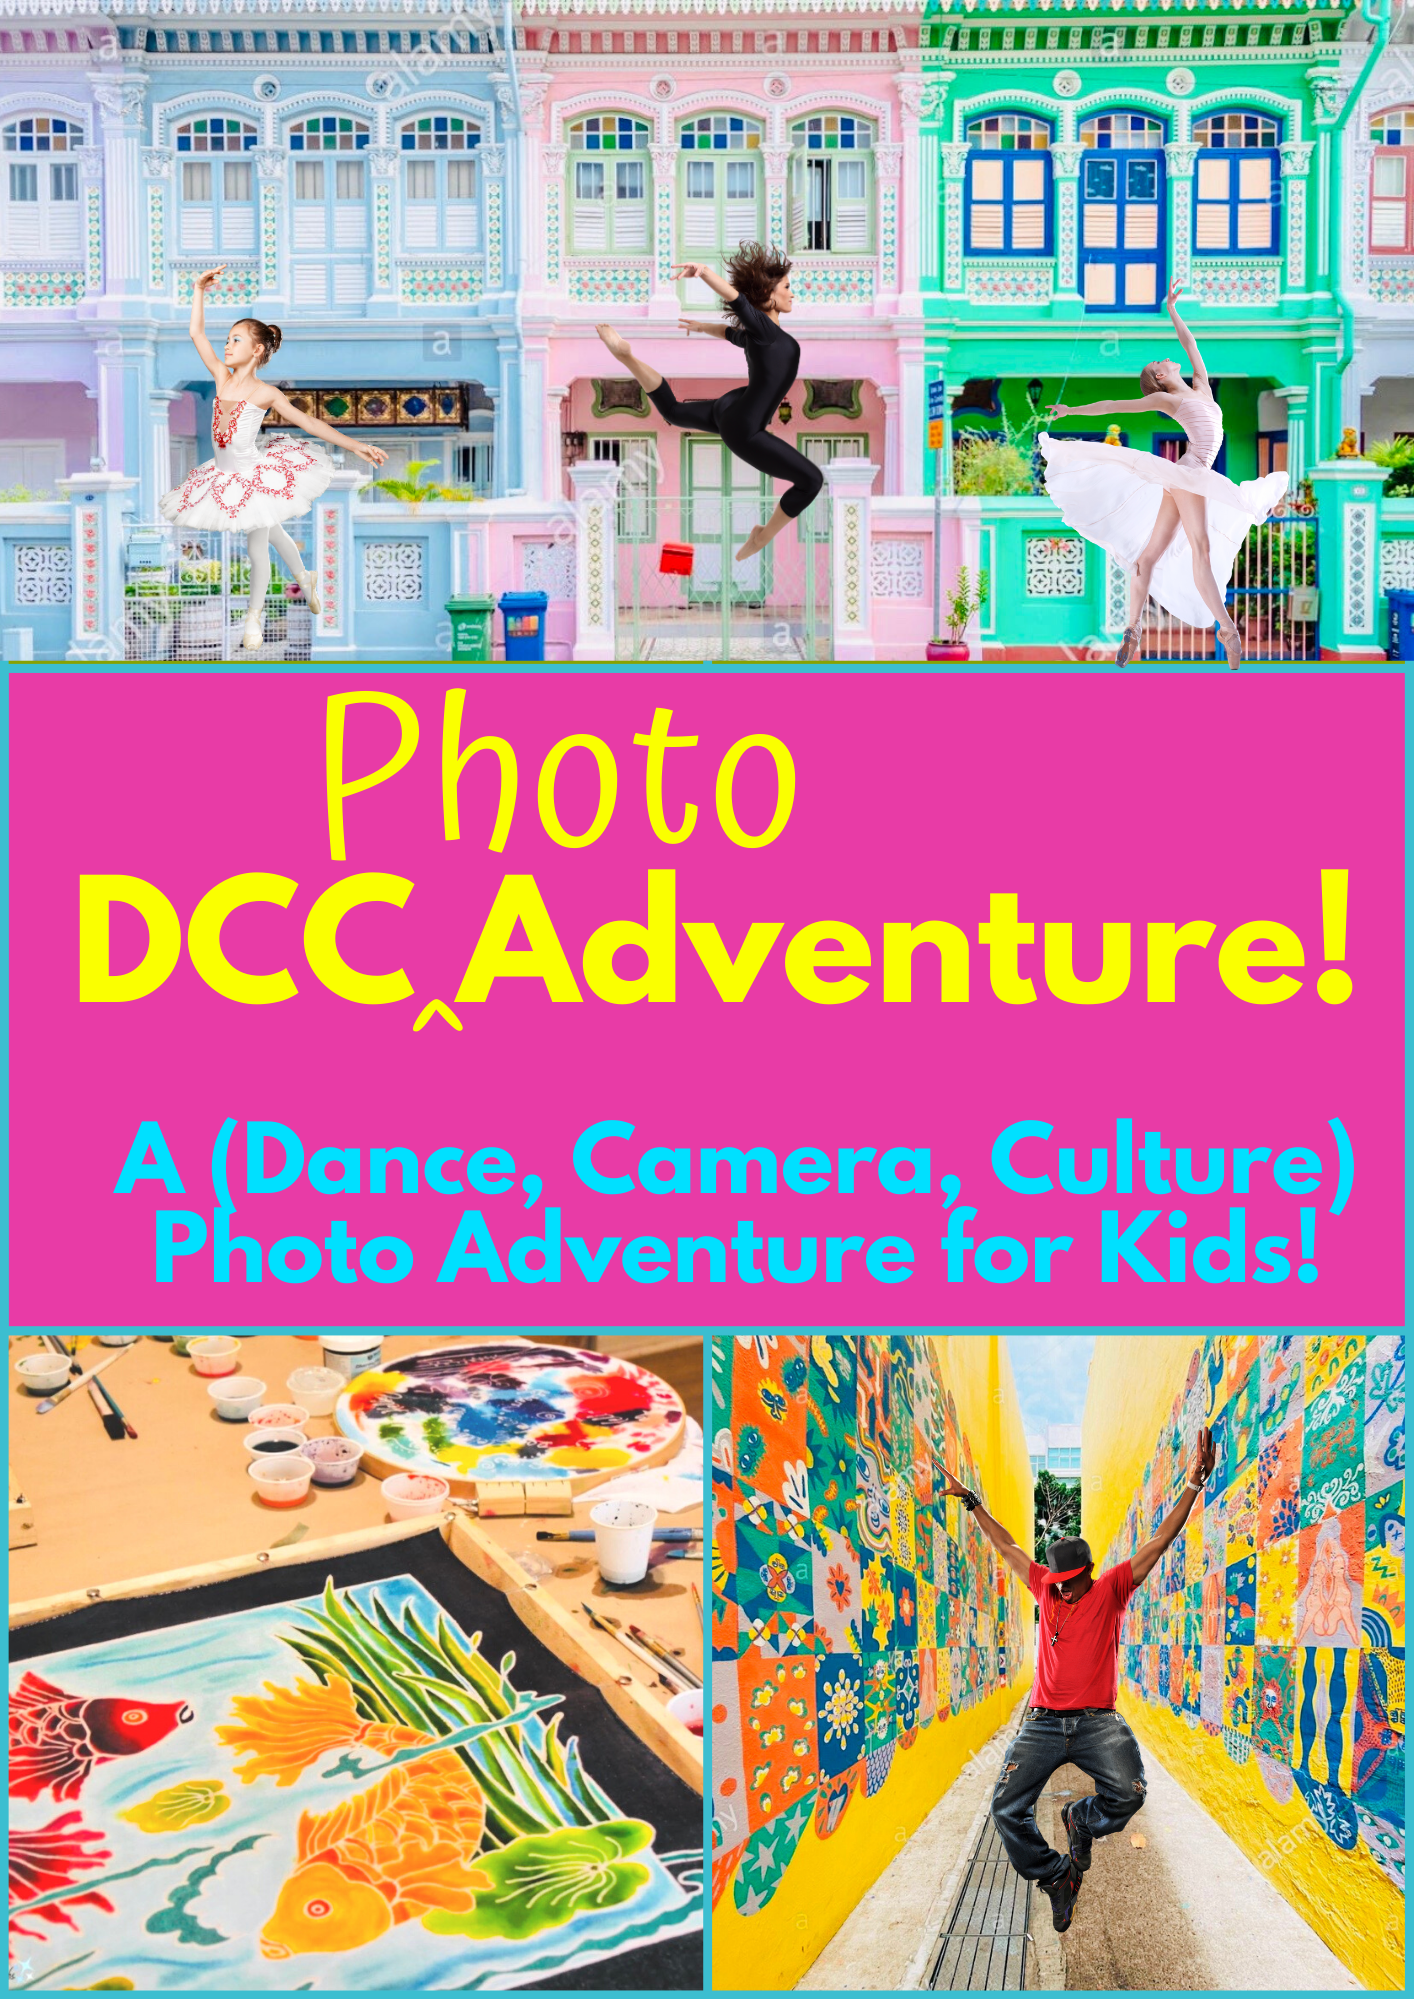 Ritz Dance Holiday Program for Children - Dance, Camera, Culture Photo Adventure